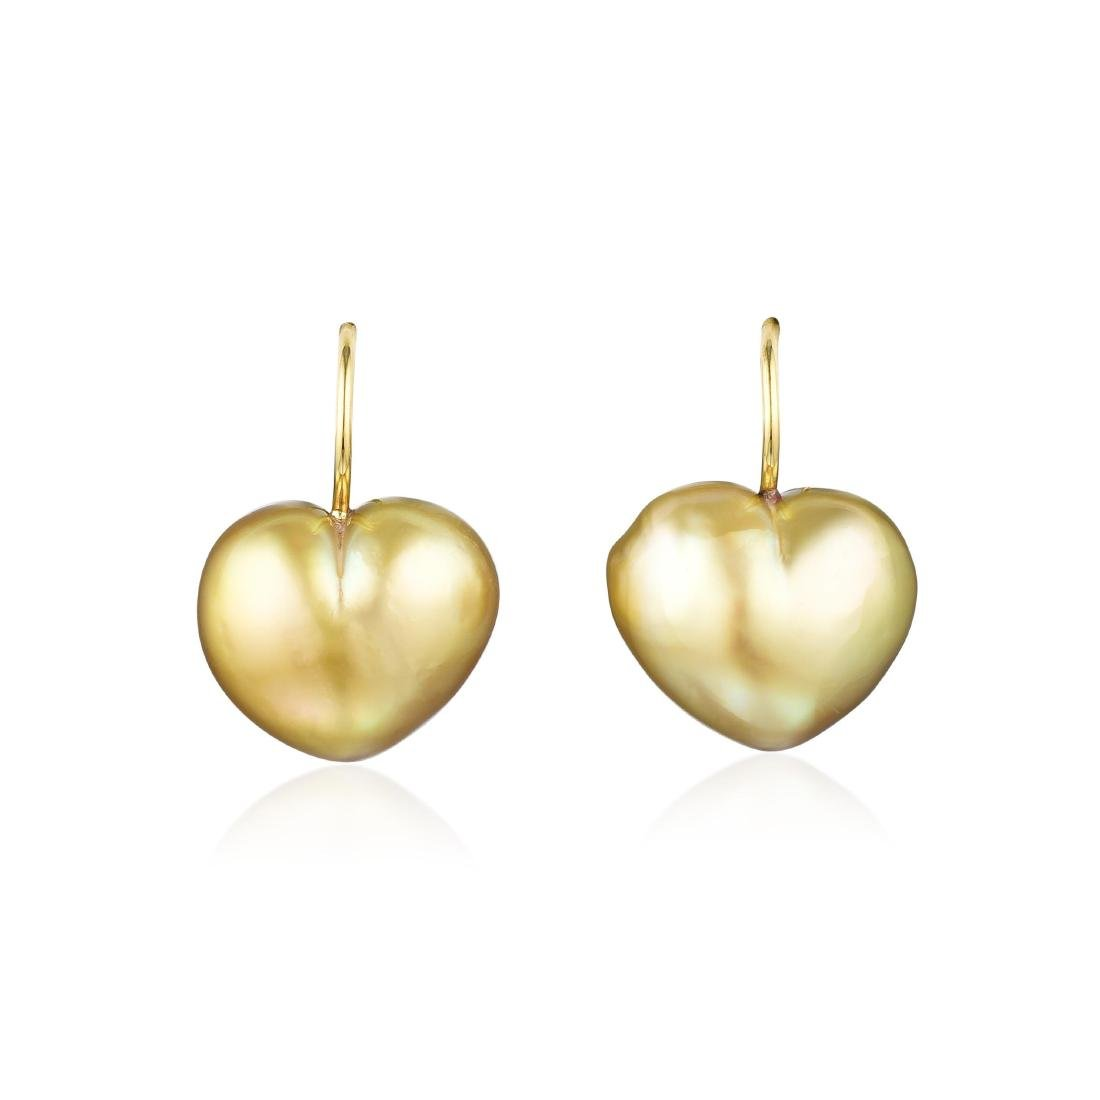 A Pair of 18K Gold Heart Shaped Cultured Pearl Earrings